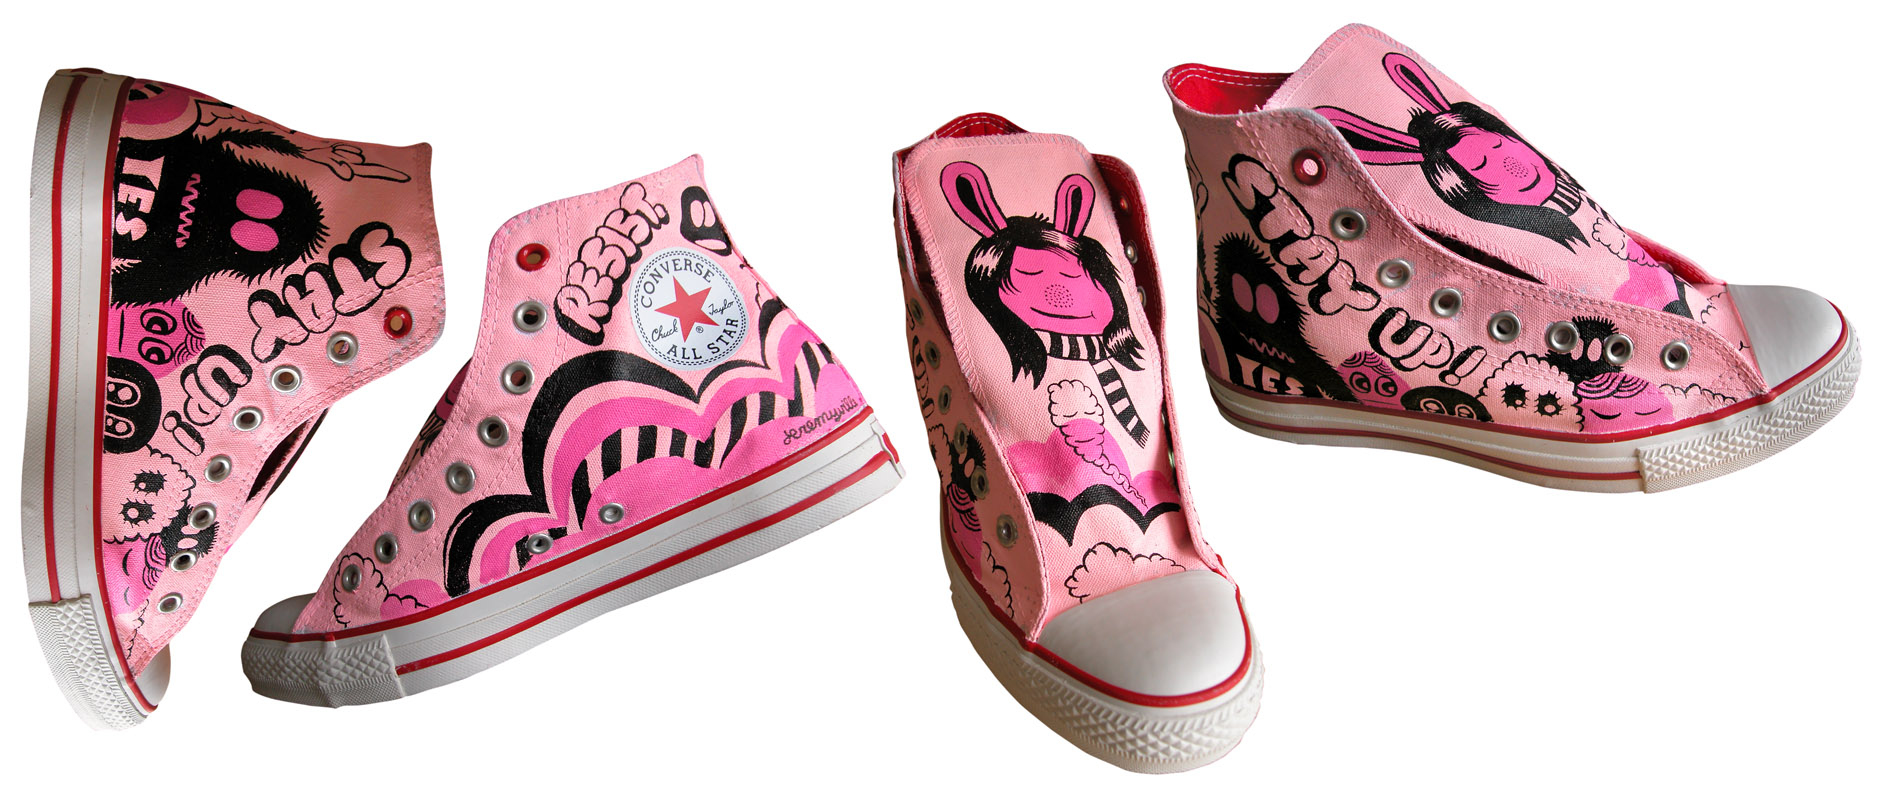 converse_RedxJeremyville_lowres